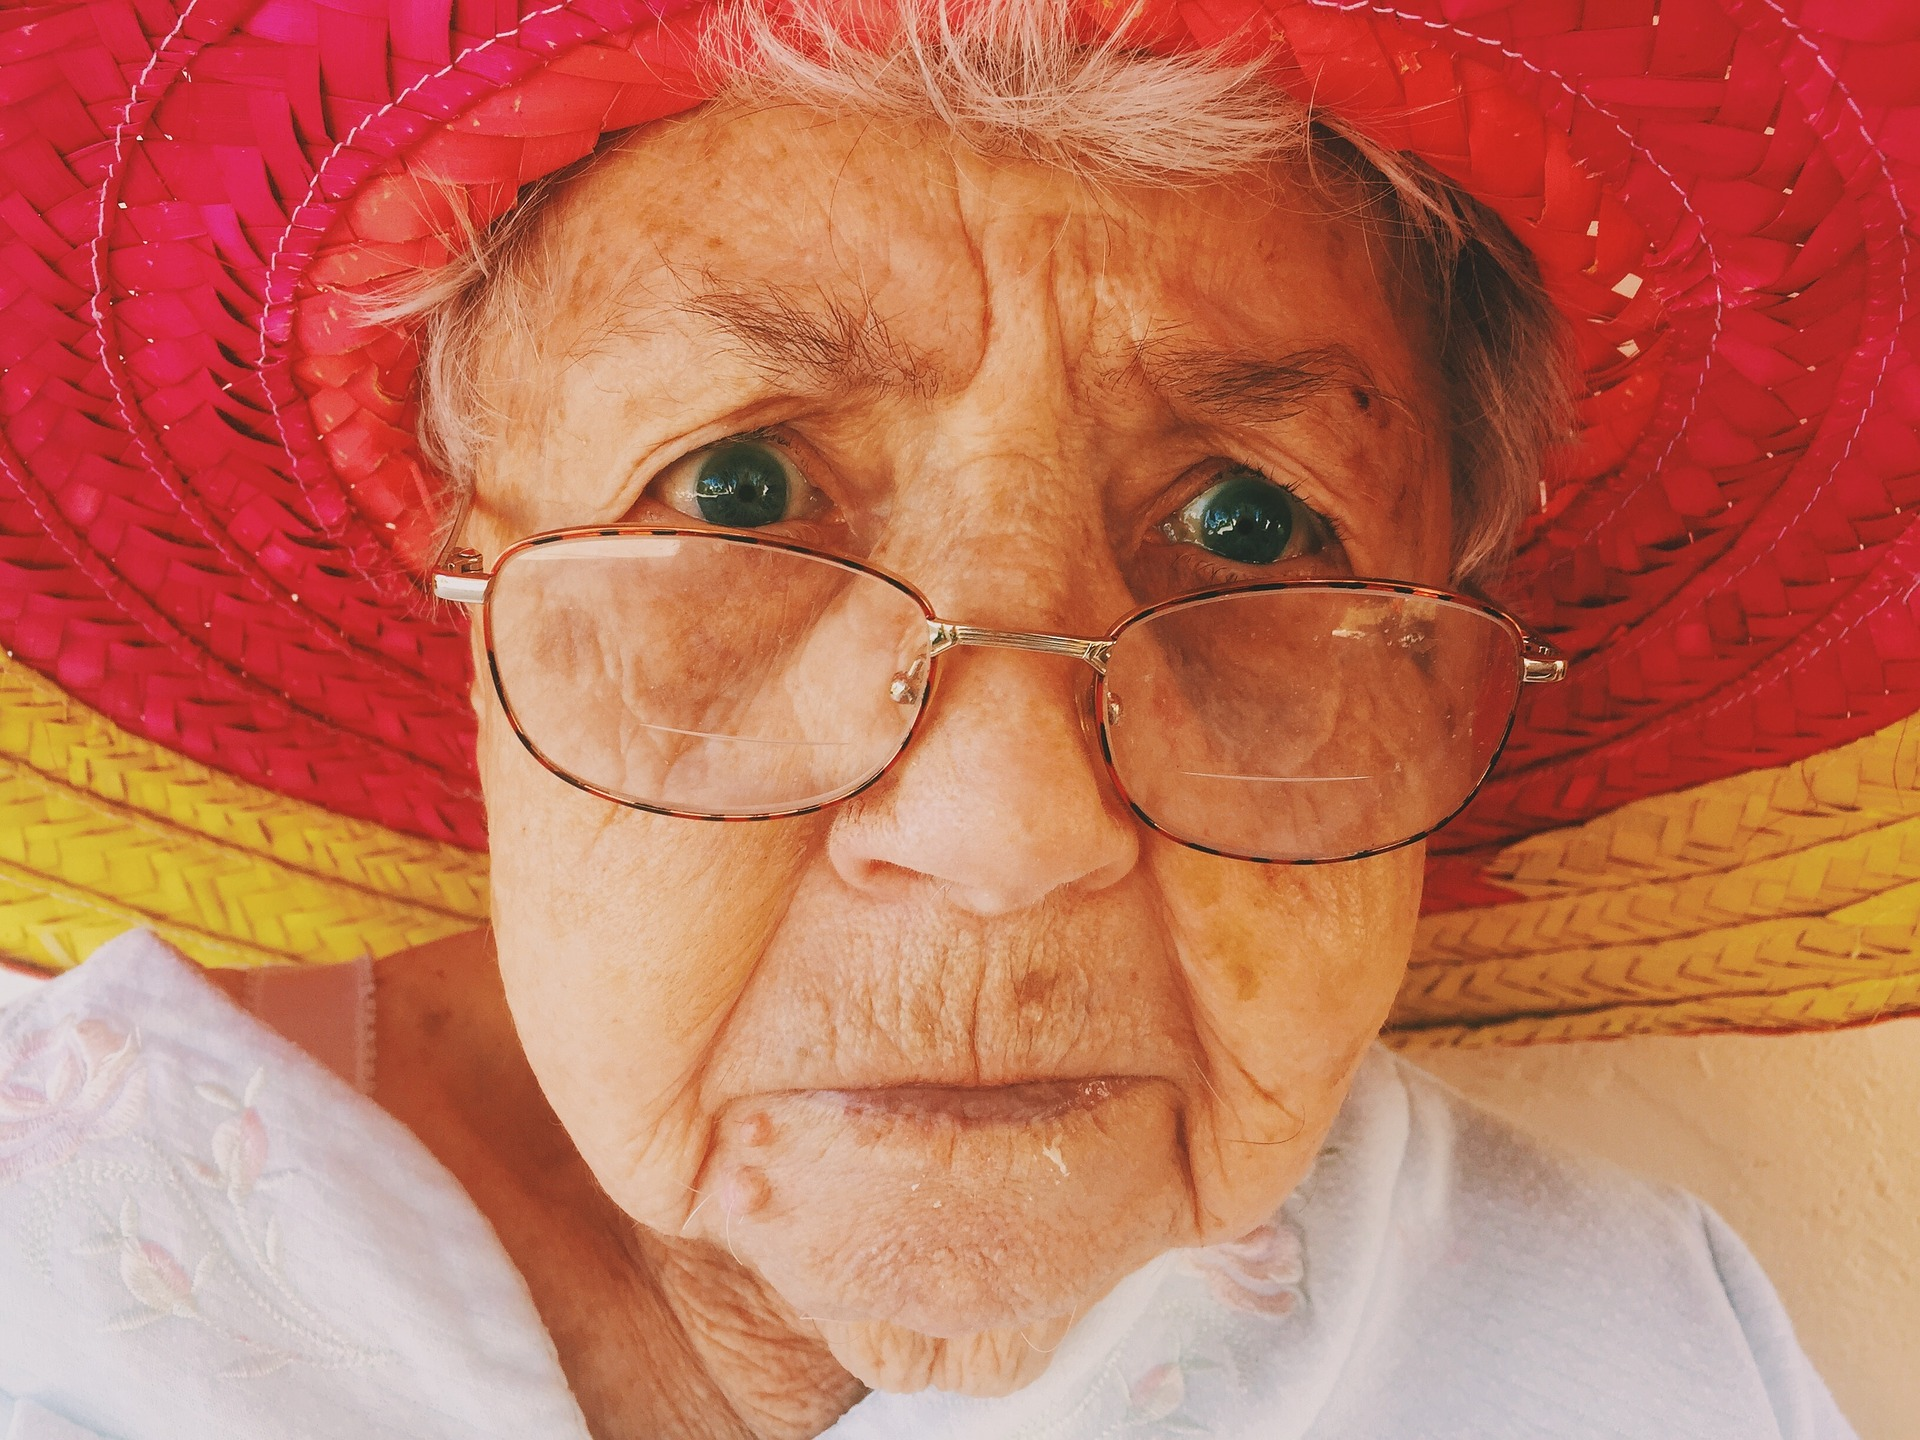 facial closeup of older woman with big hat, glasses down her nose, and serious expression